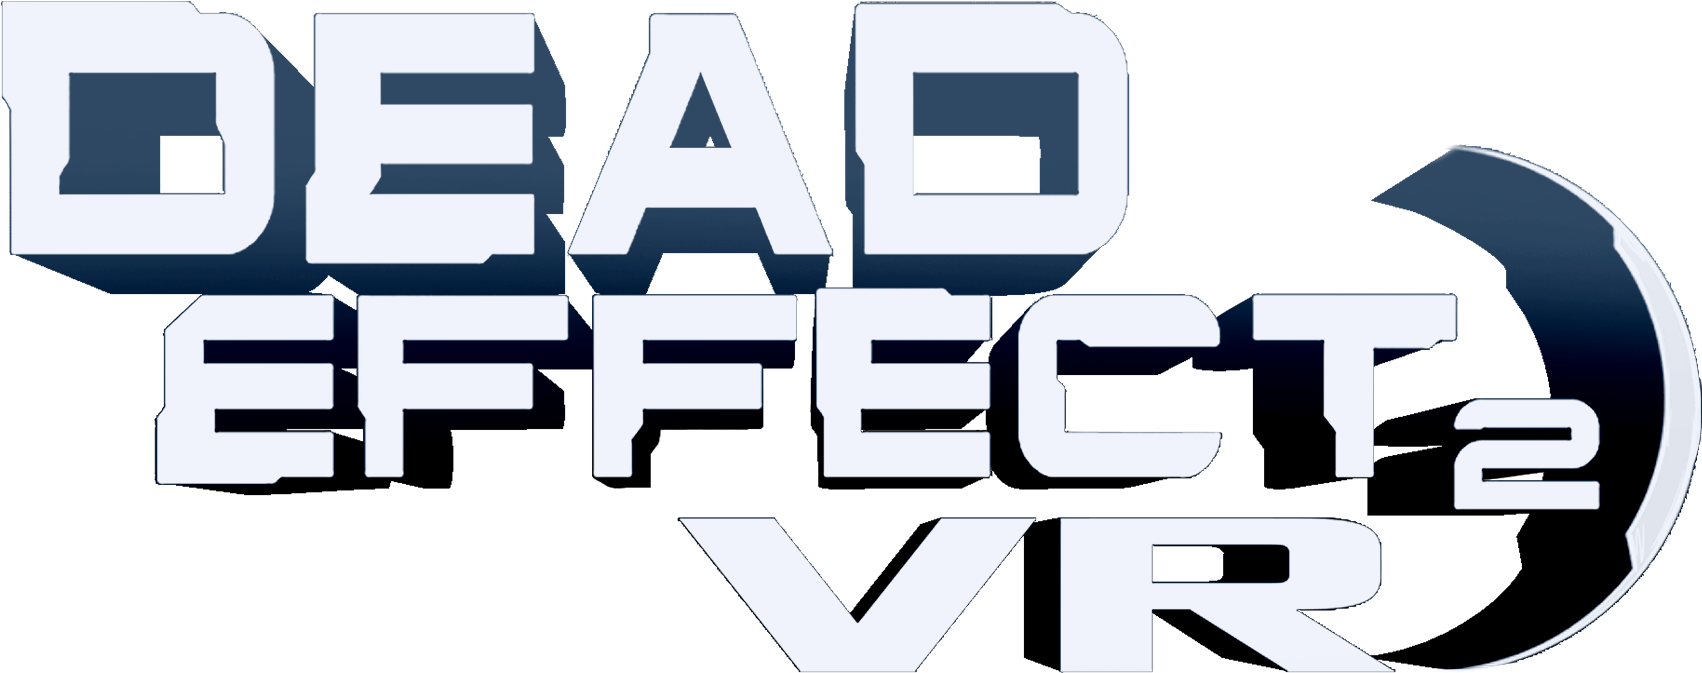 Download Dead Effect 2 Vr Logo - Virtual Reality - Full Size